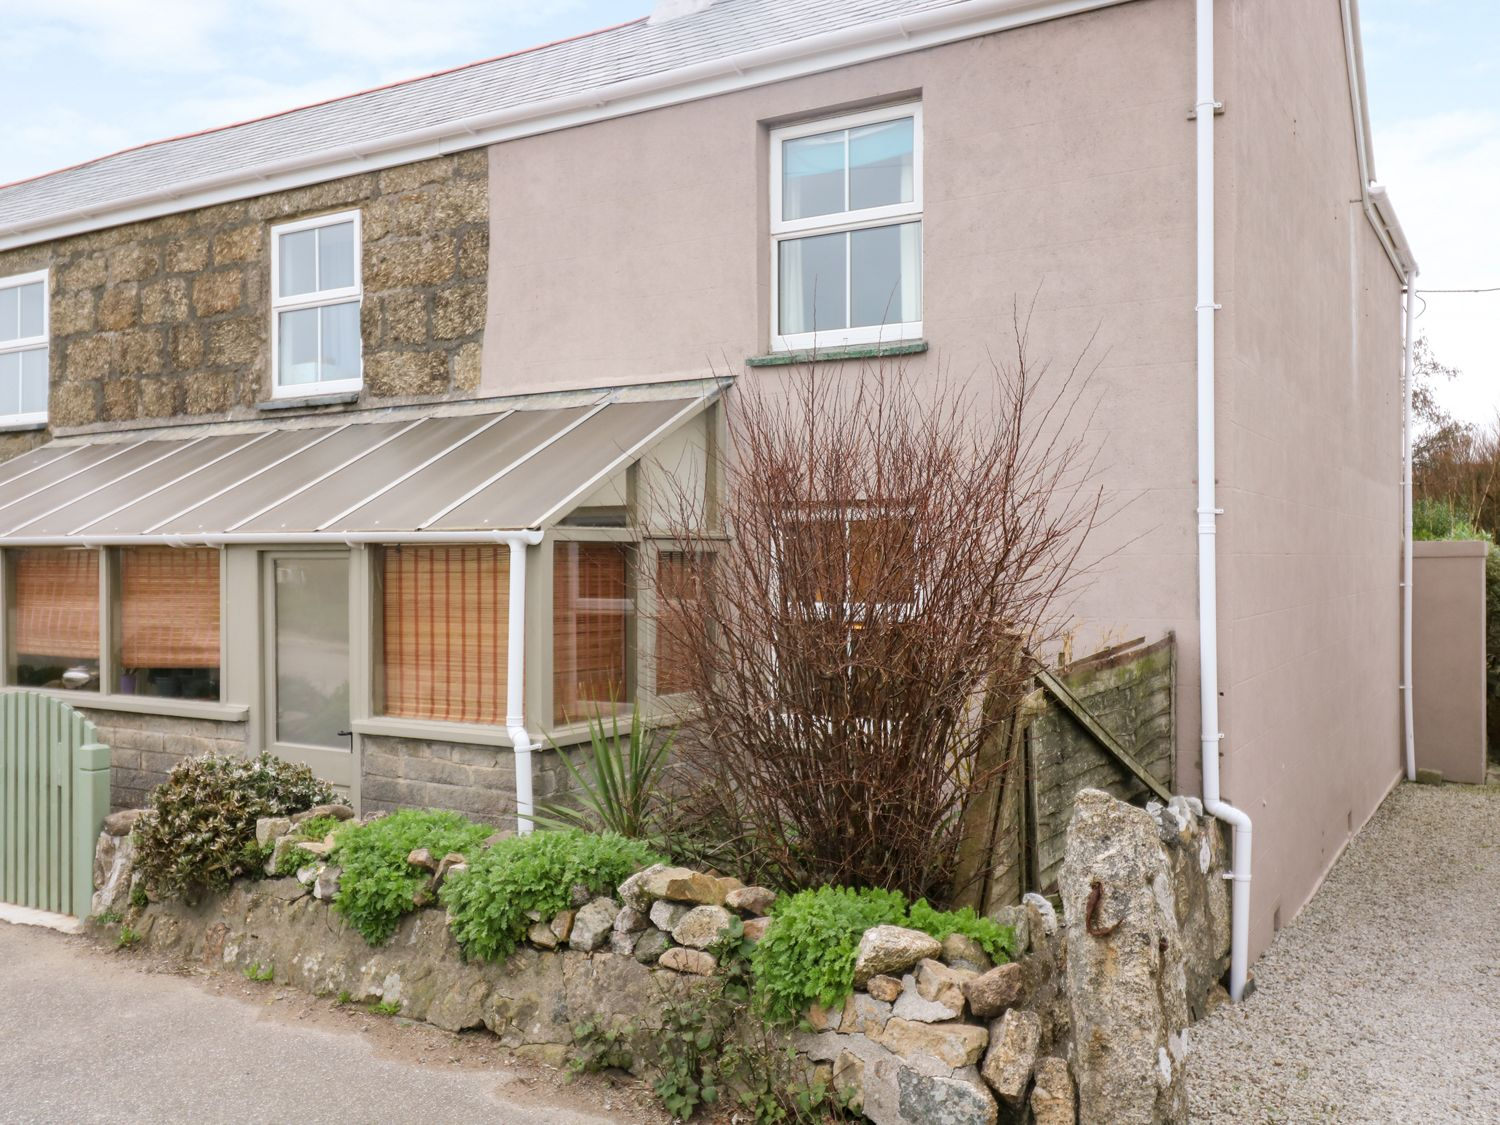 Smithy Cottage, St Levan, Cornwall